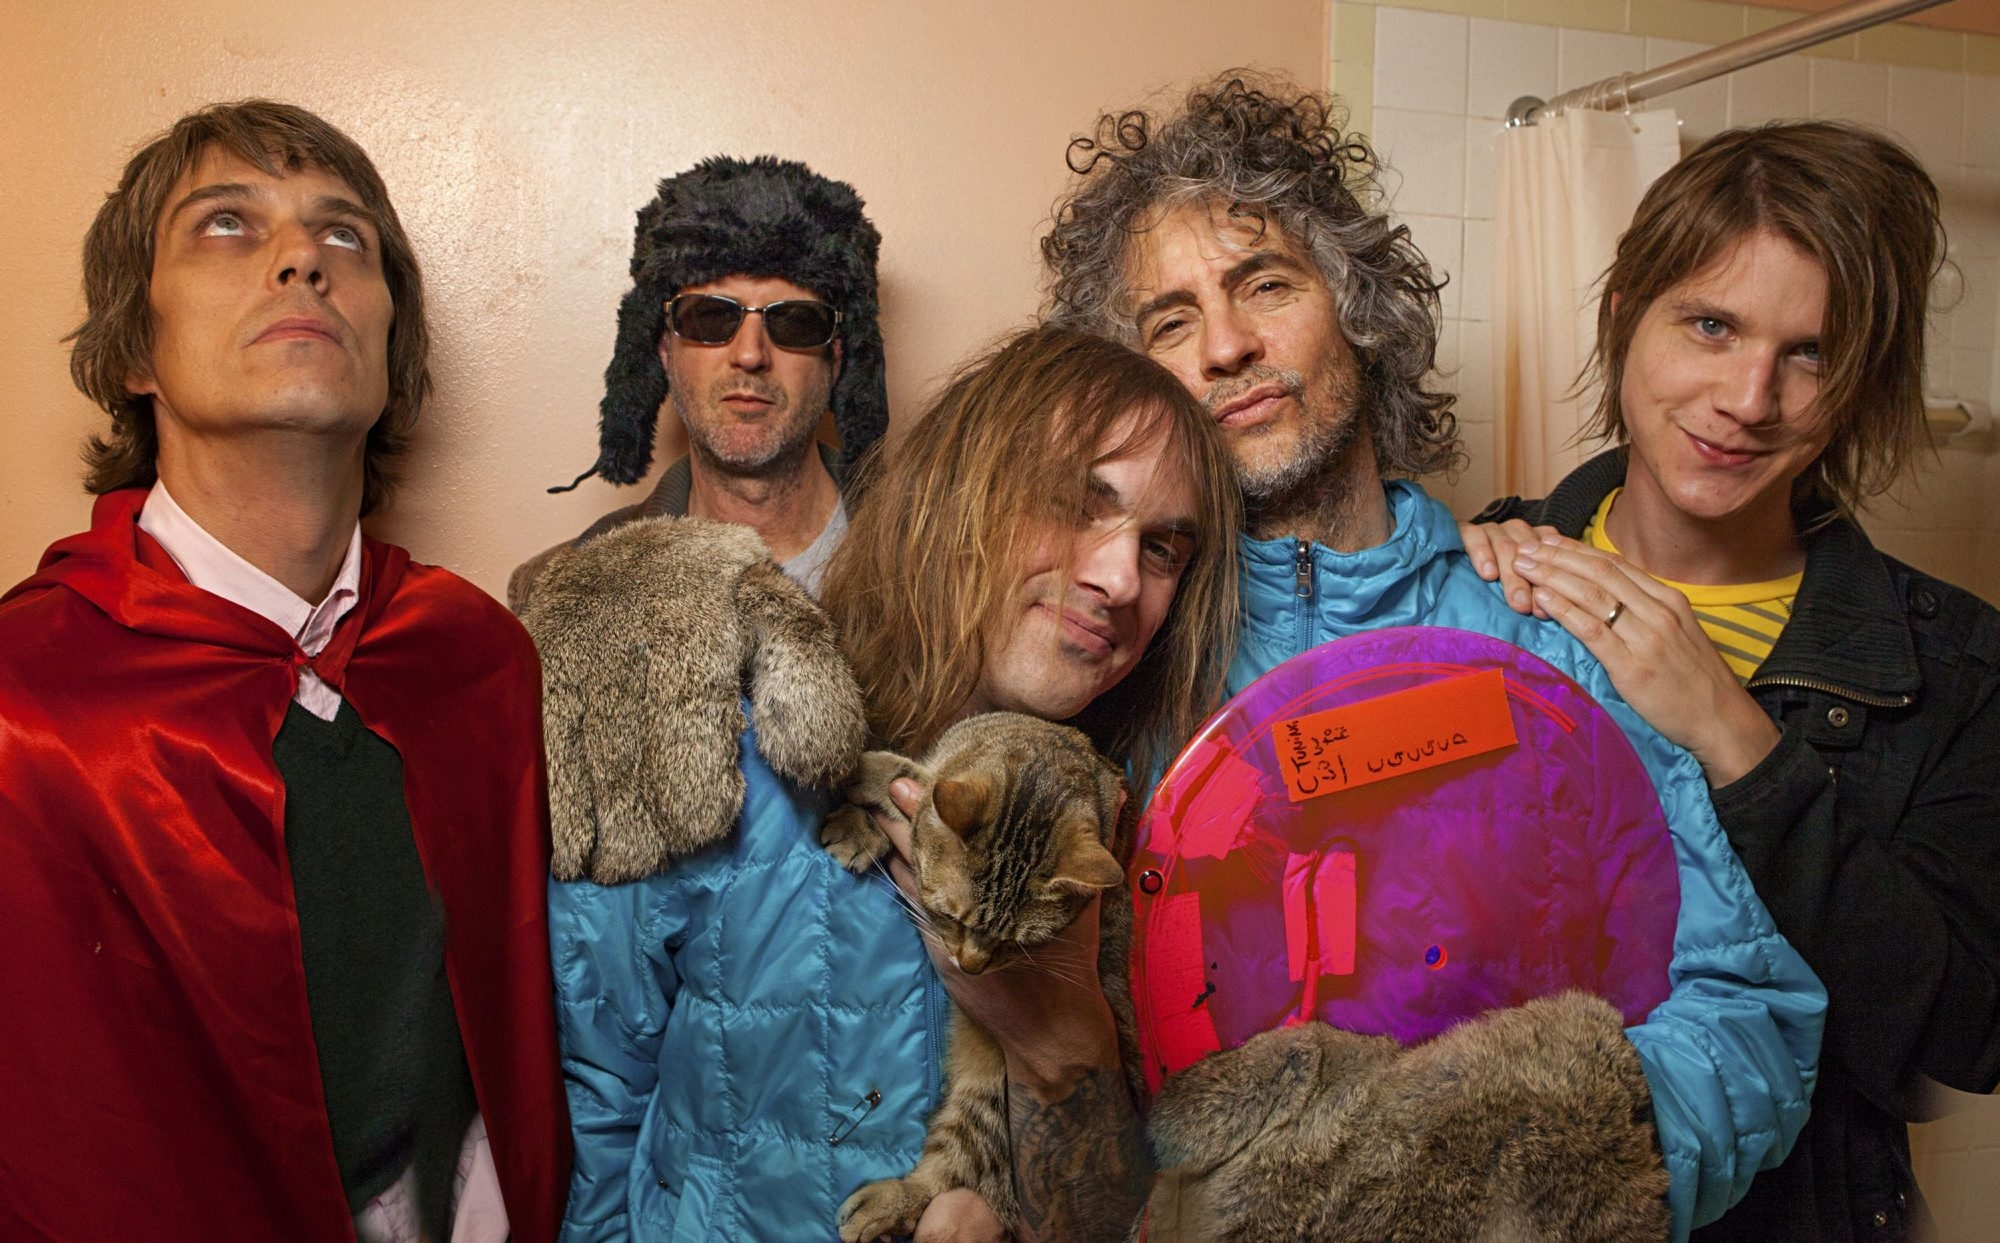 The Flaming Lips will perform at Artpark on July 17 as part of the venue's Wednesday night concert series.